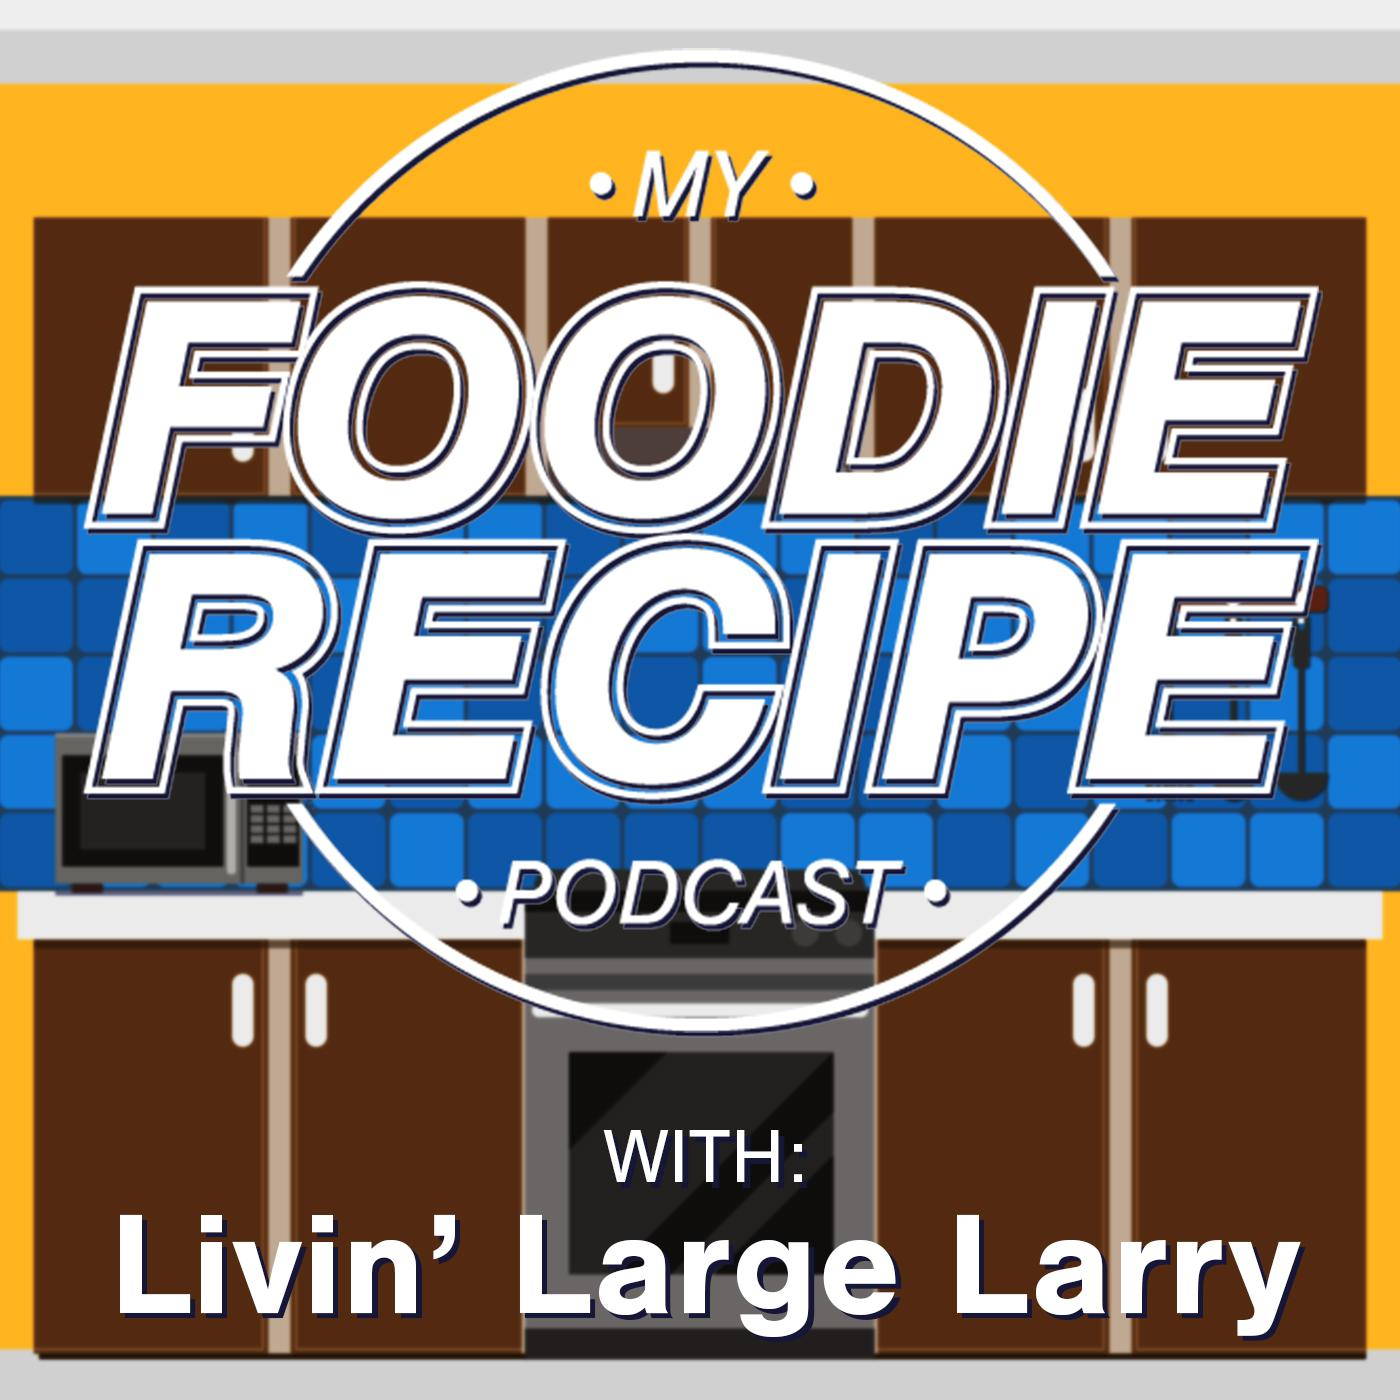 My Foodie Recipe Podcast